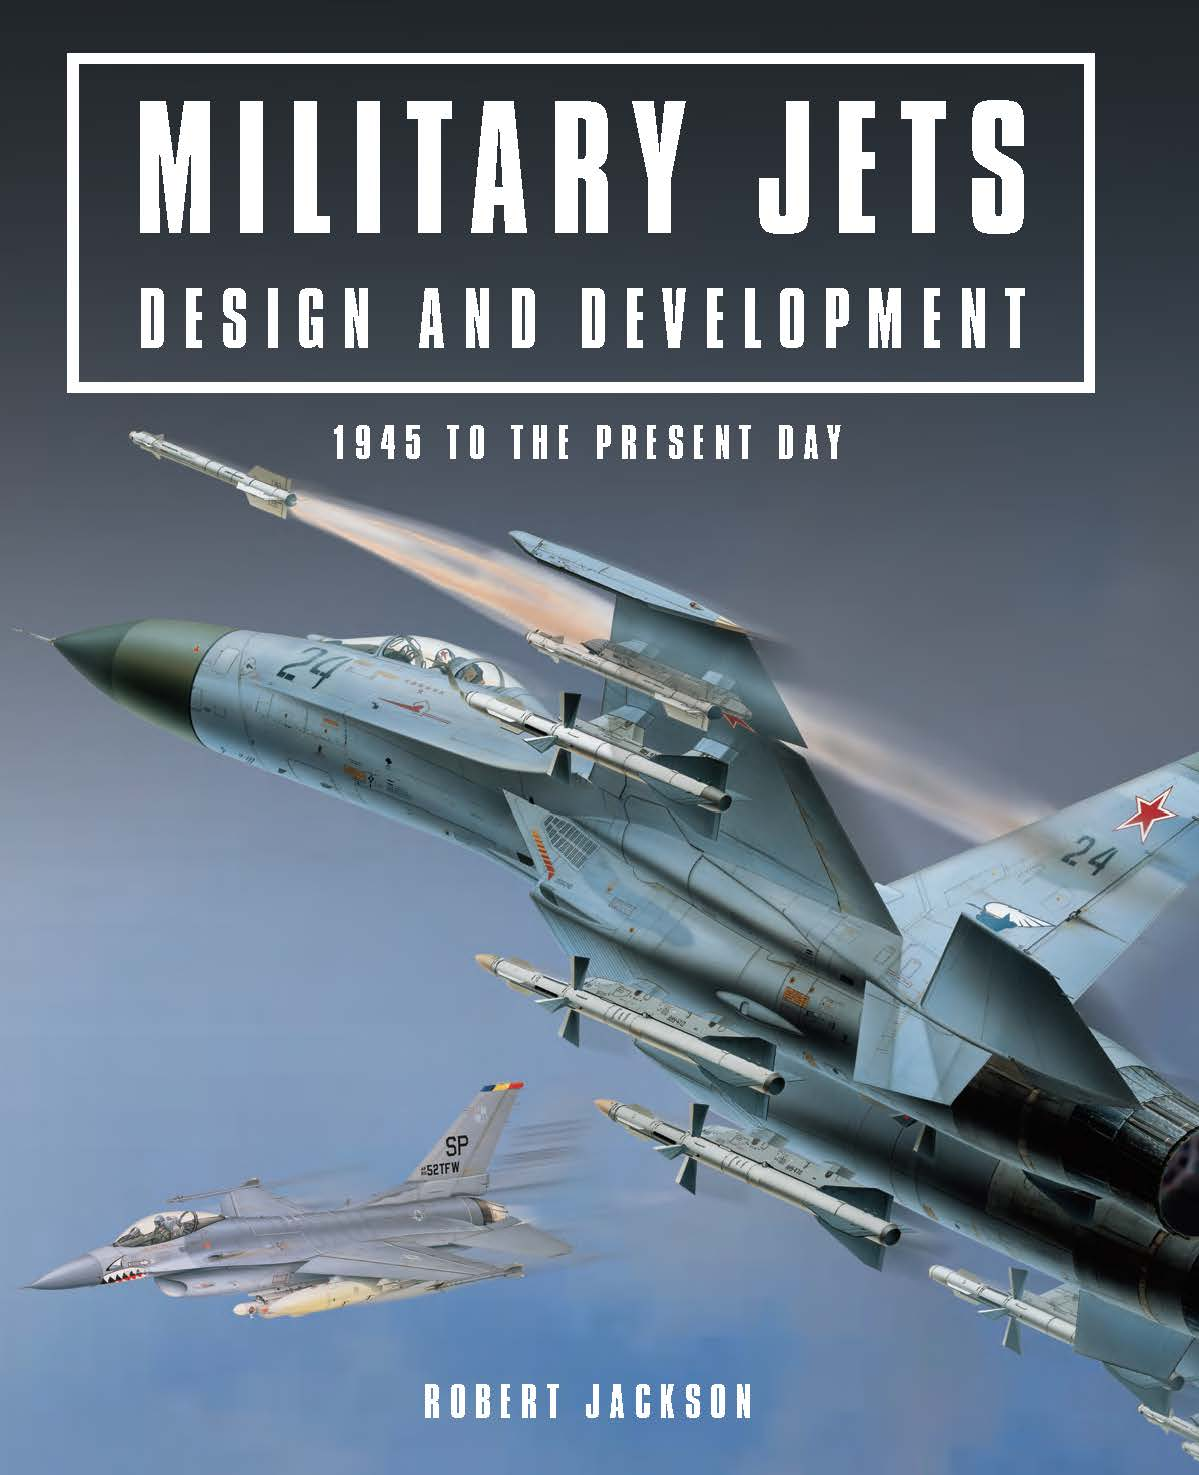 Military Jets: Design and Development